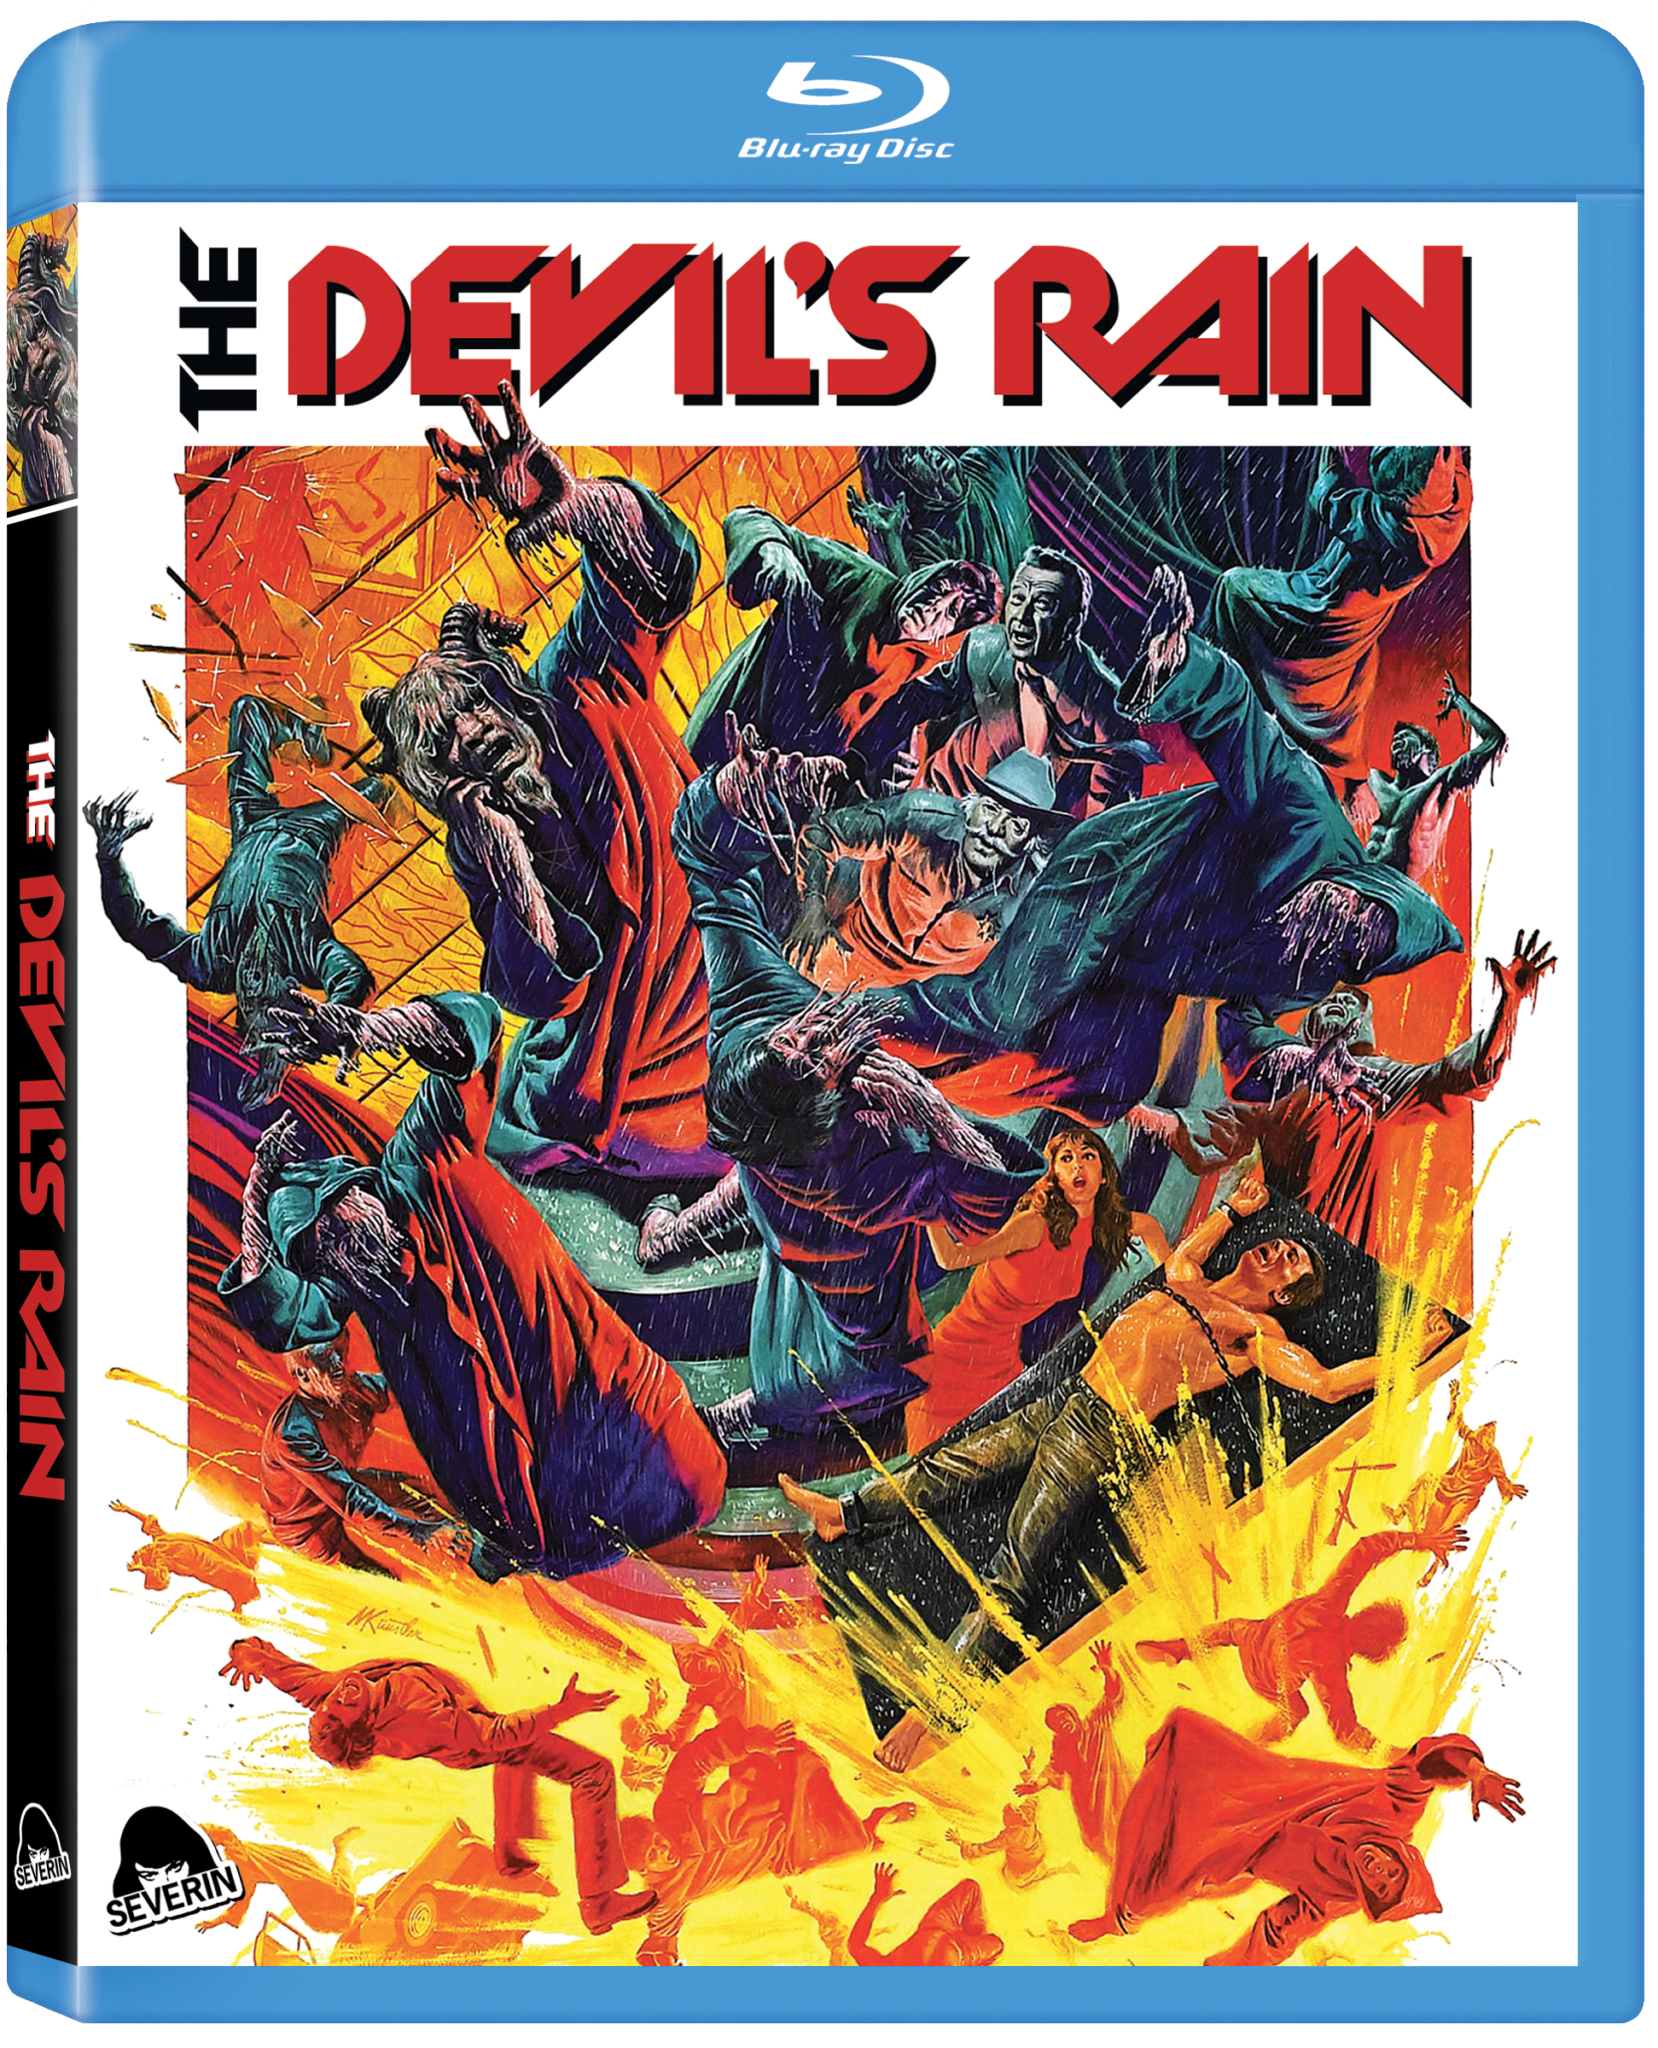 the devil's rain blu-ray